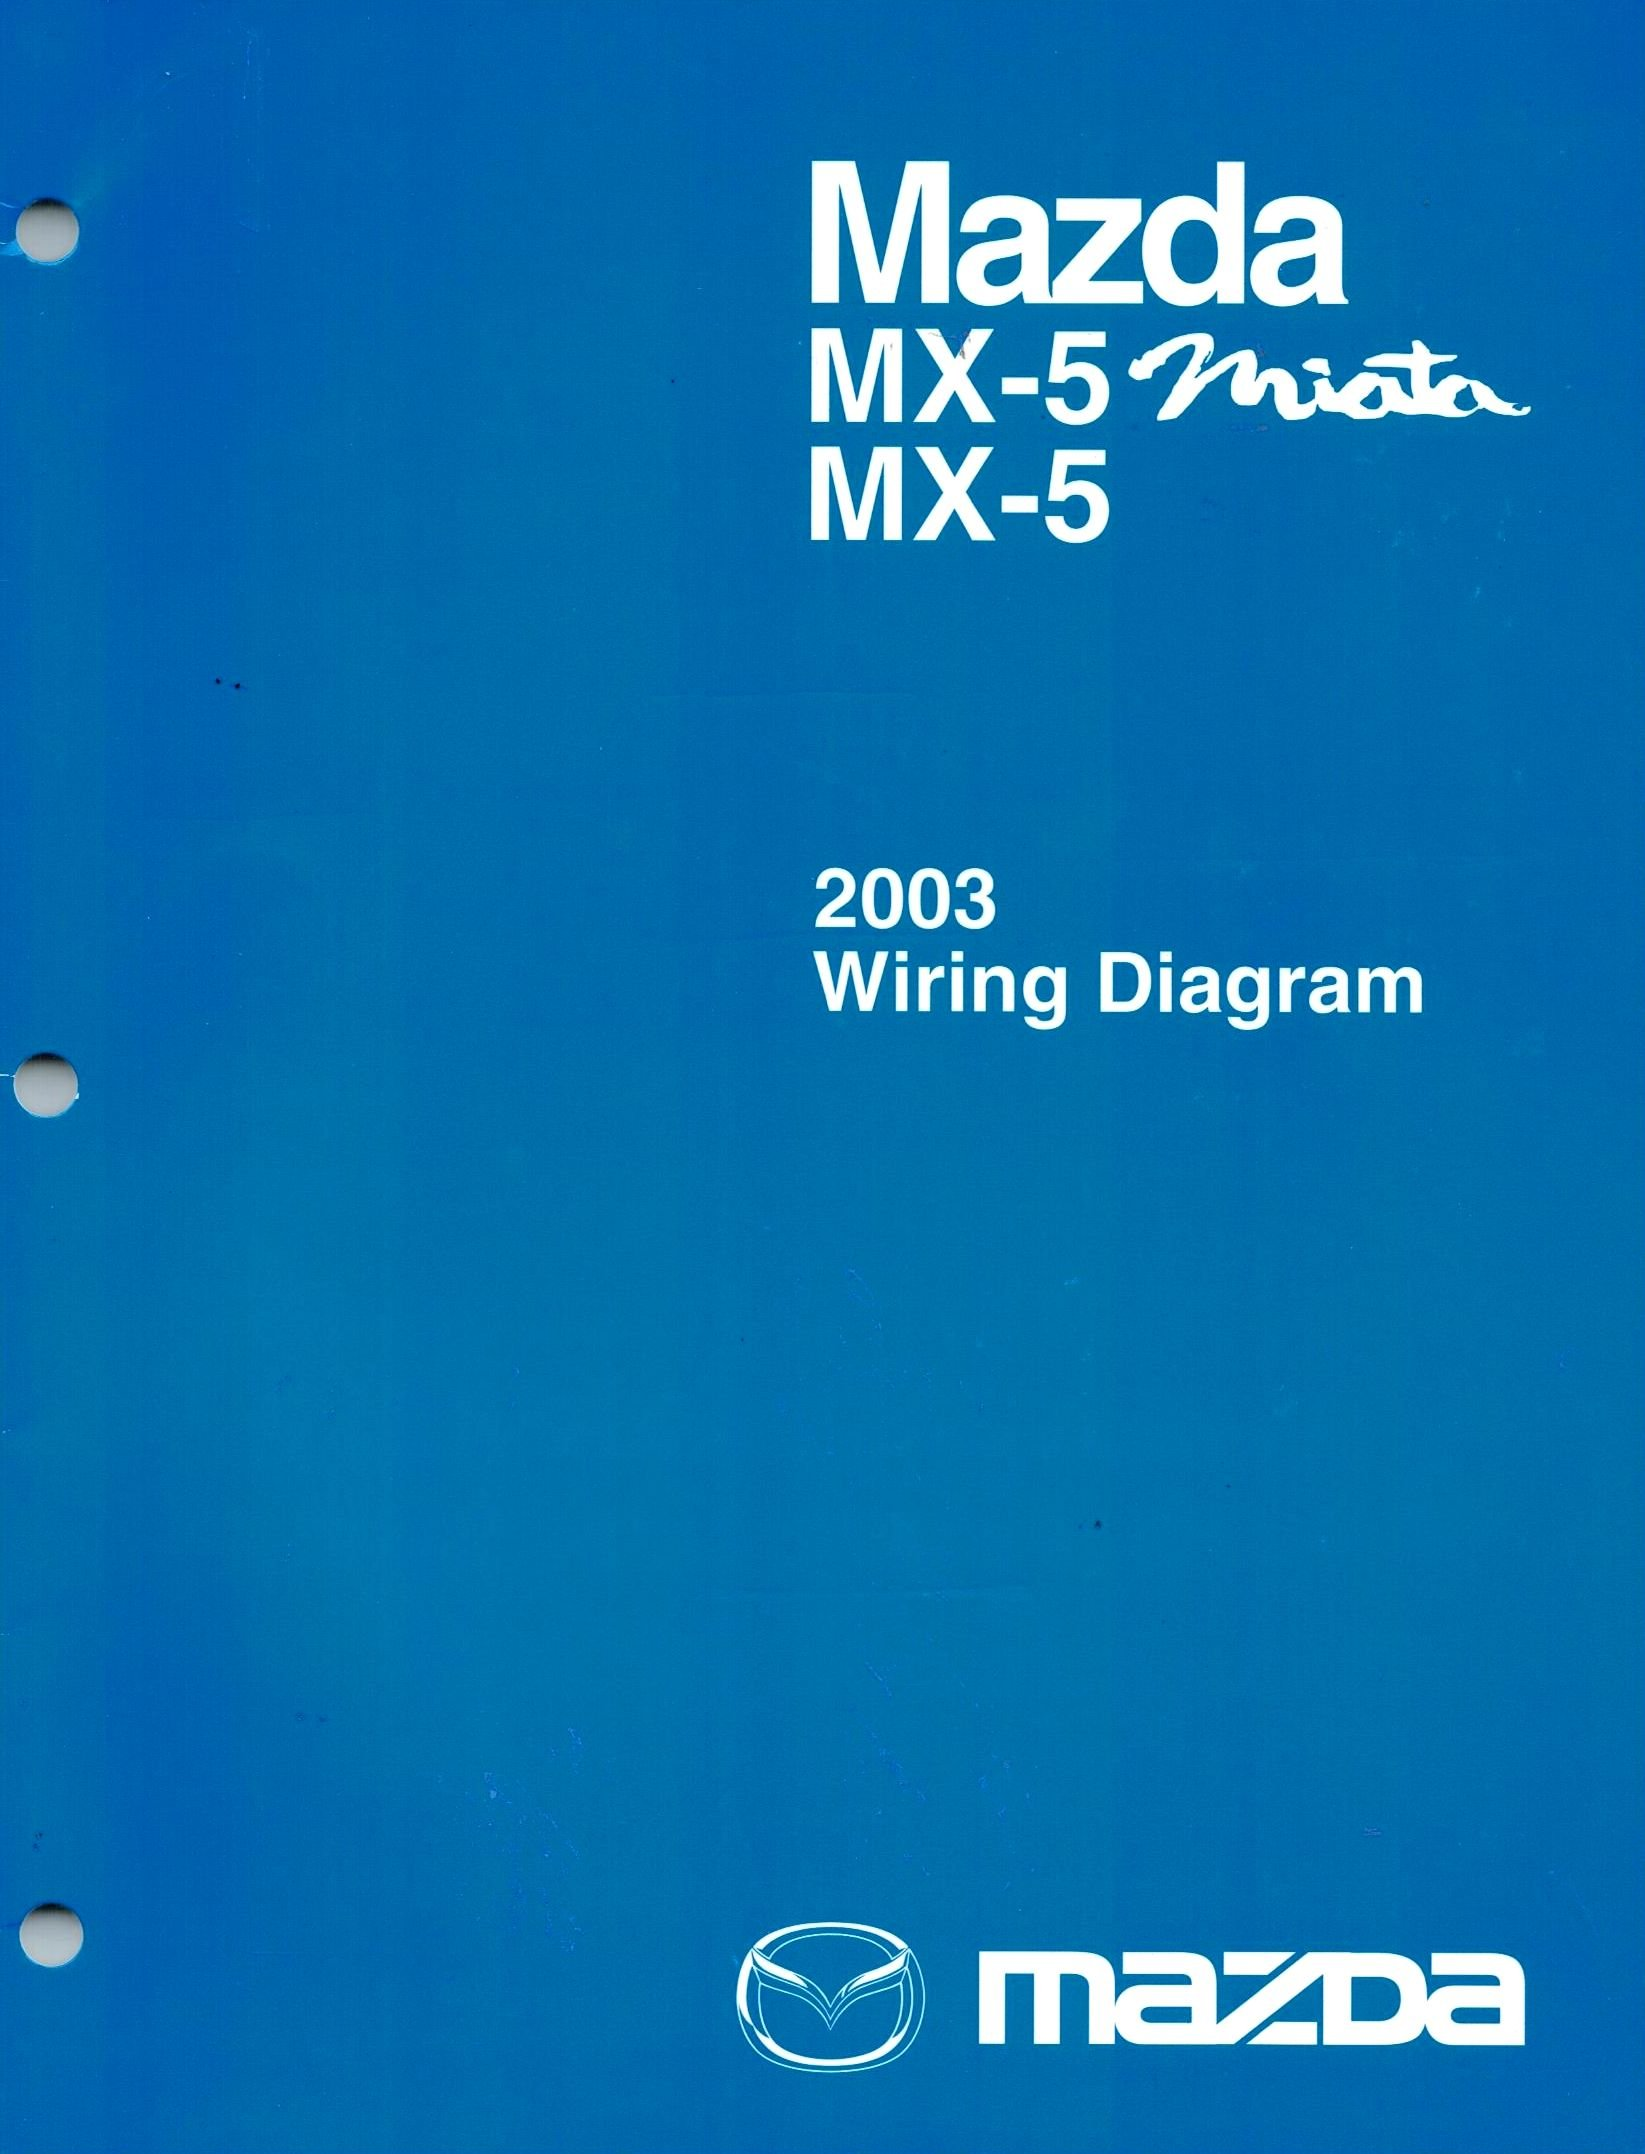 2003 mazda mx-5 miata factory wiring diagrams, part no  9999-95-026g-03  paperback – 2002